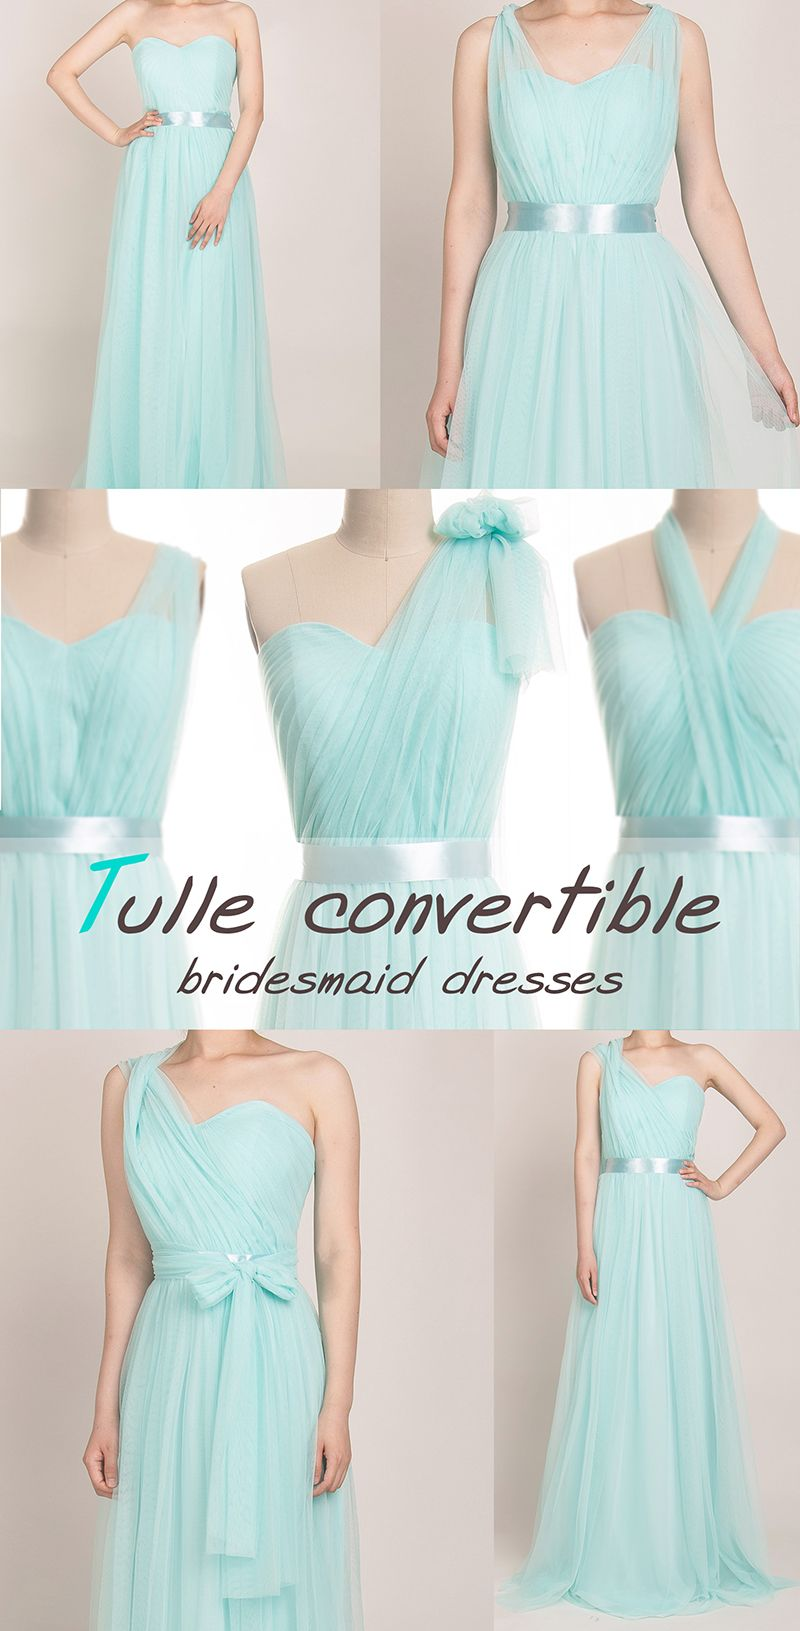 Tulle convertible multiwear bridesmaid dress tbqp rochii